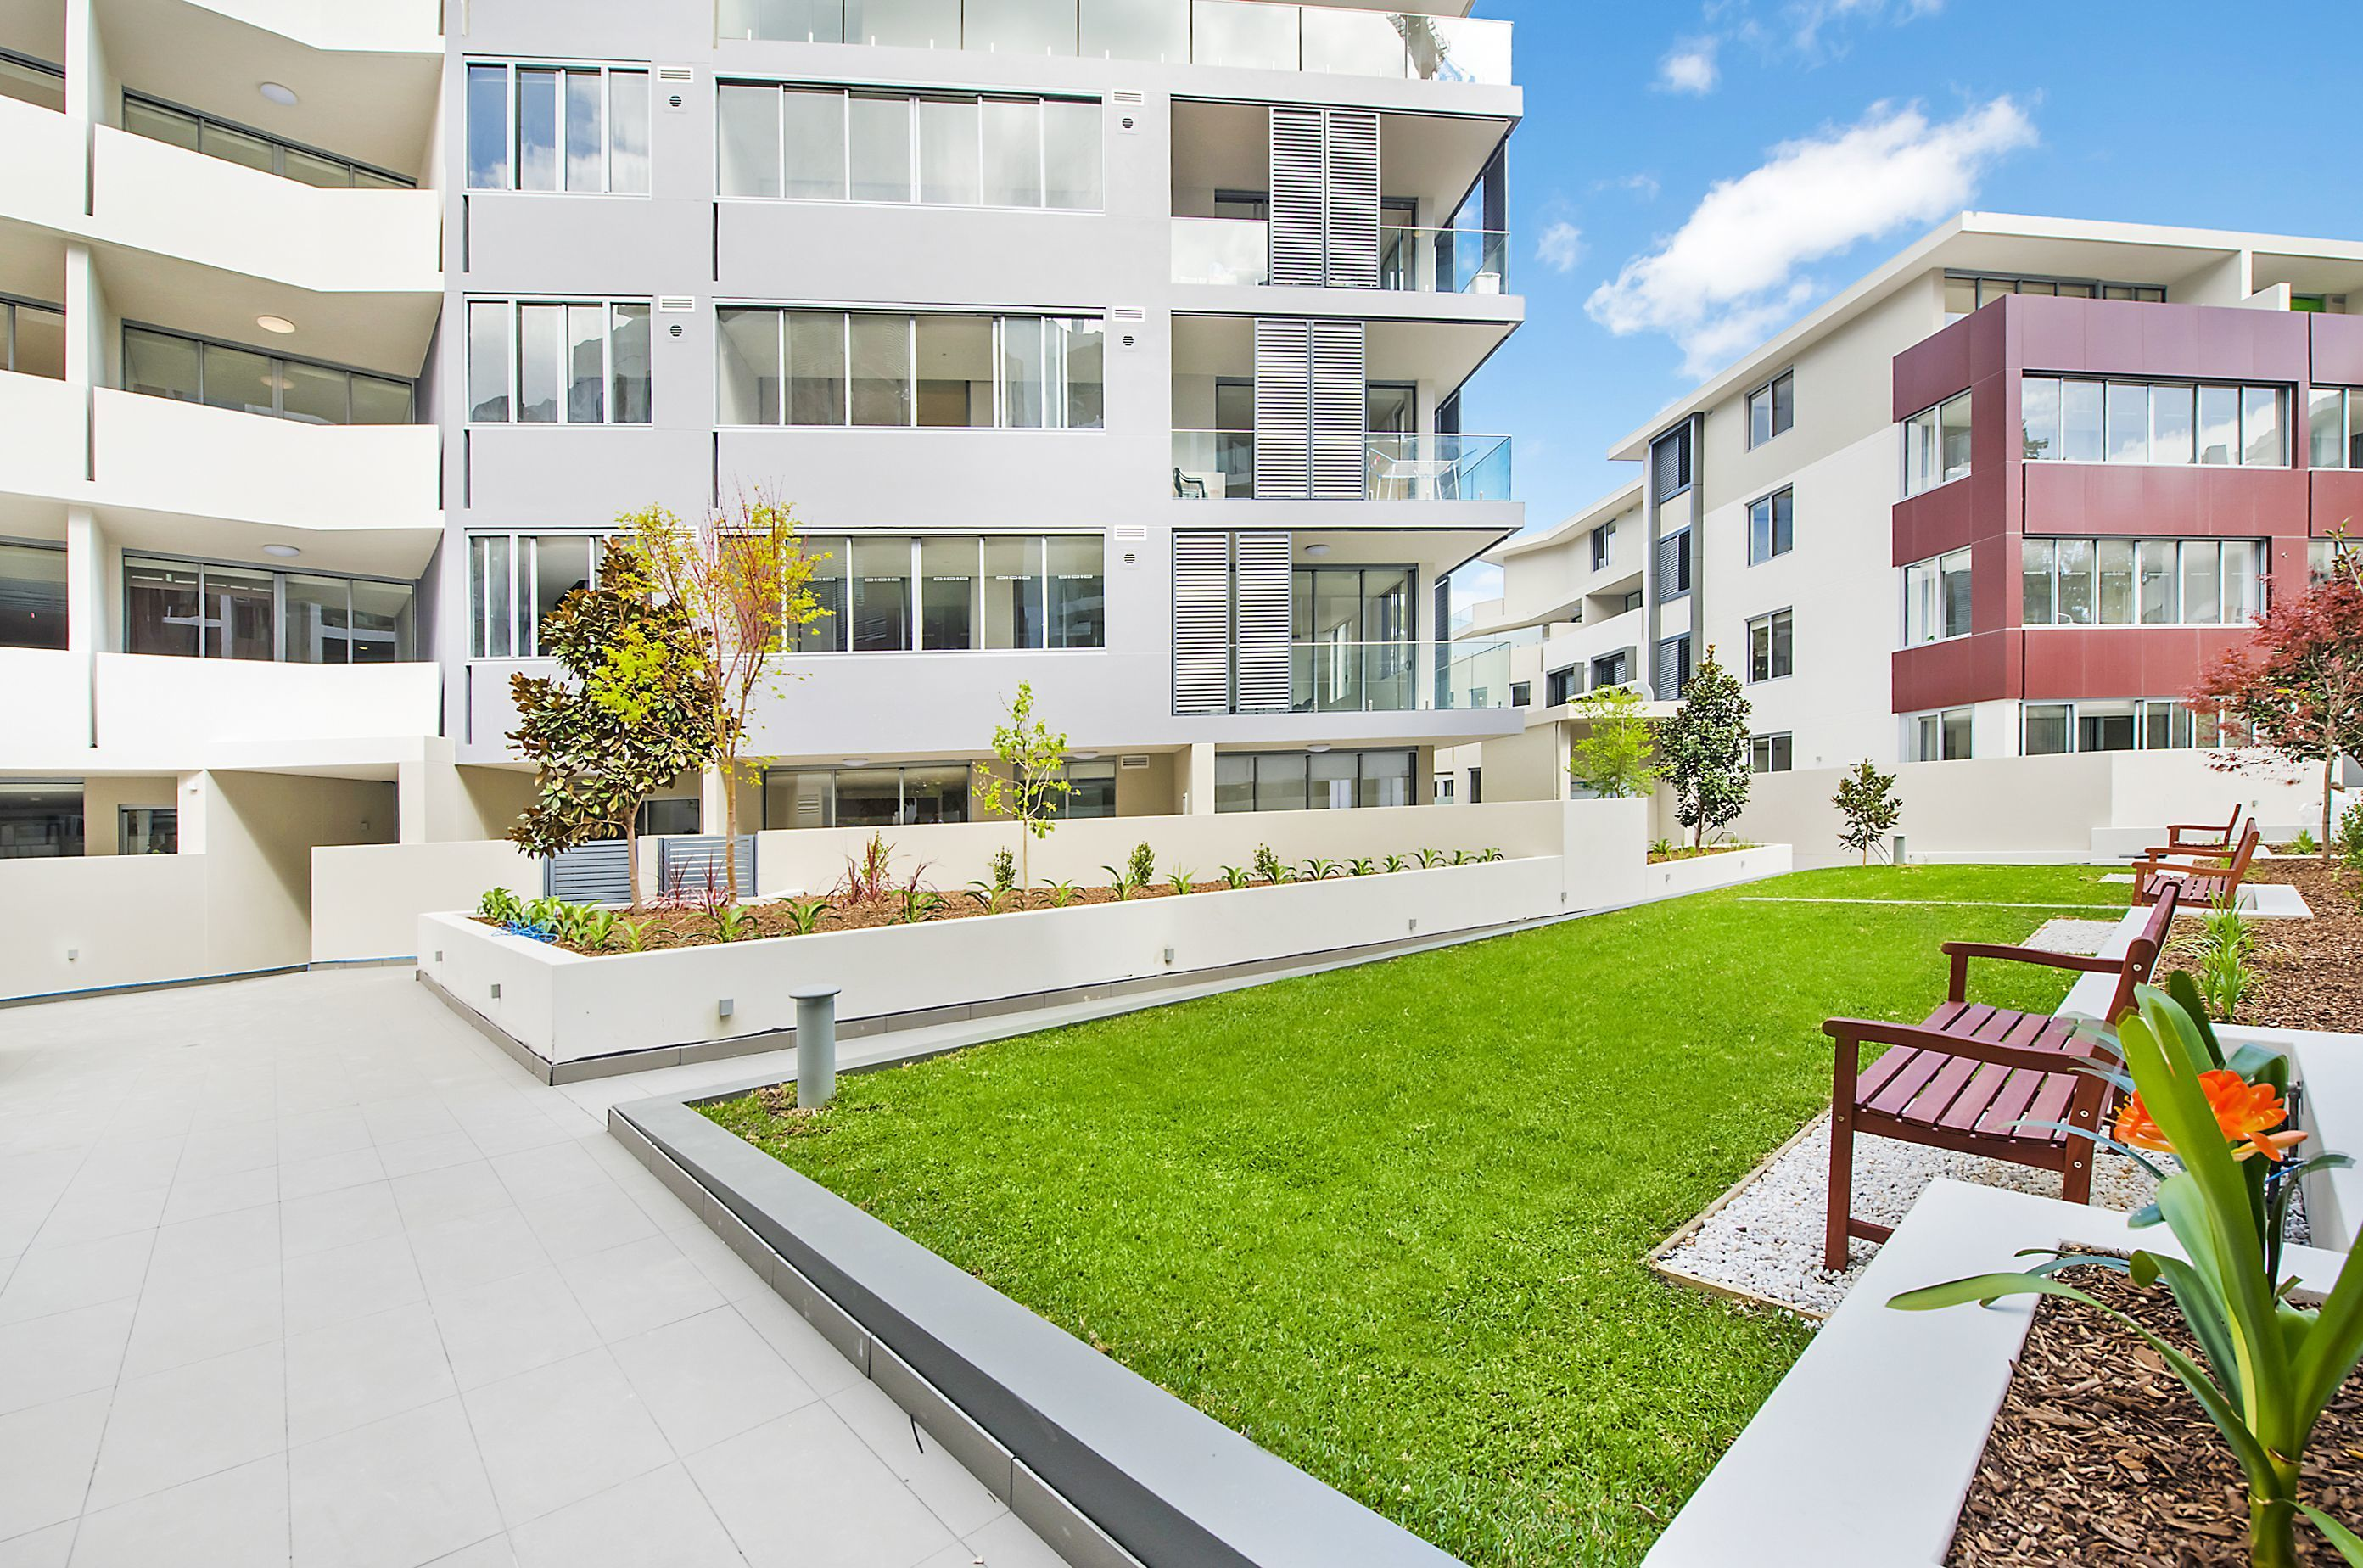 C409/7-13 Centennial Avenue, Lane Cove